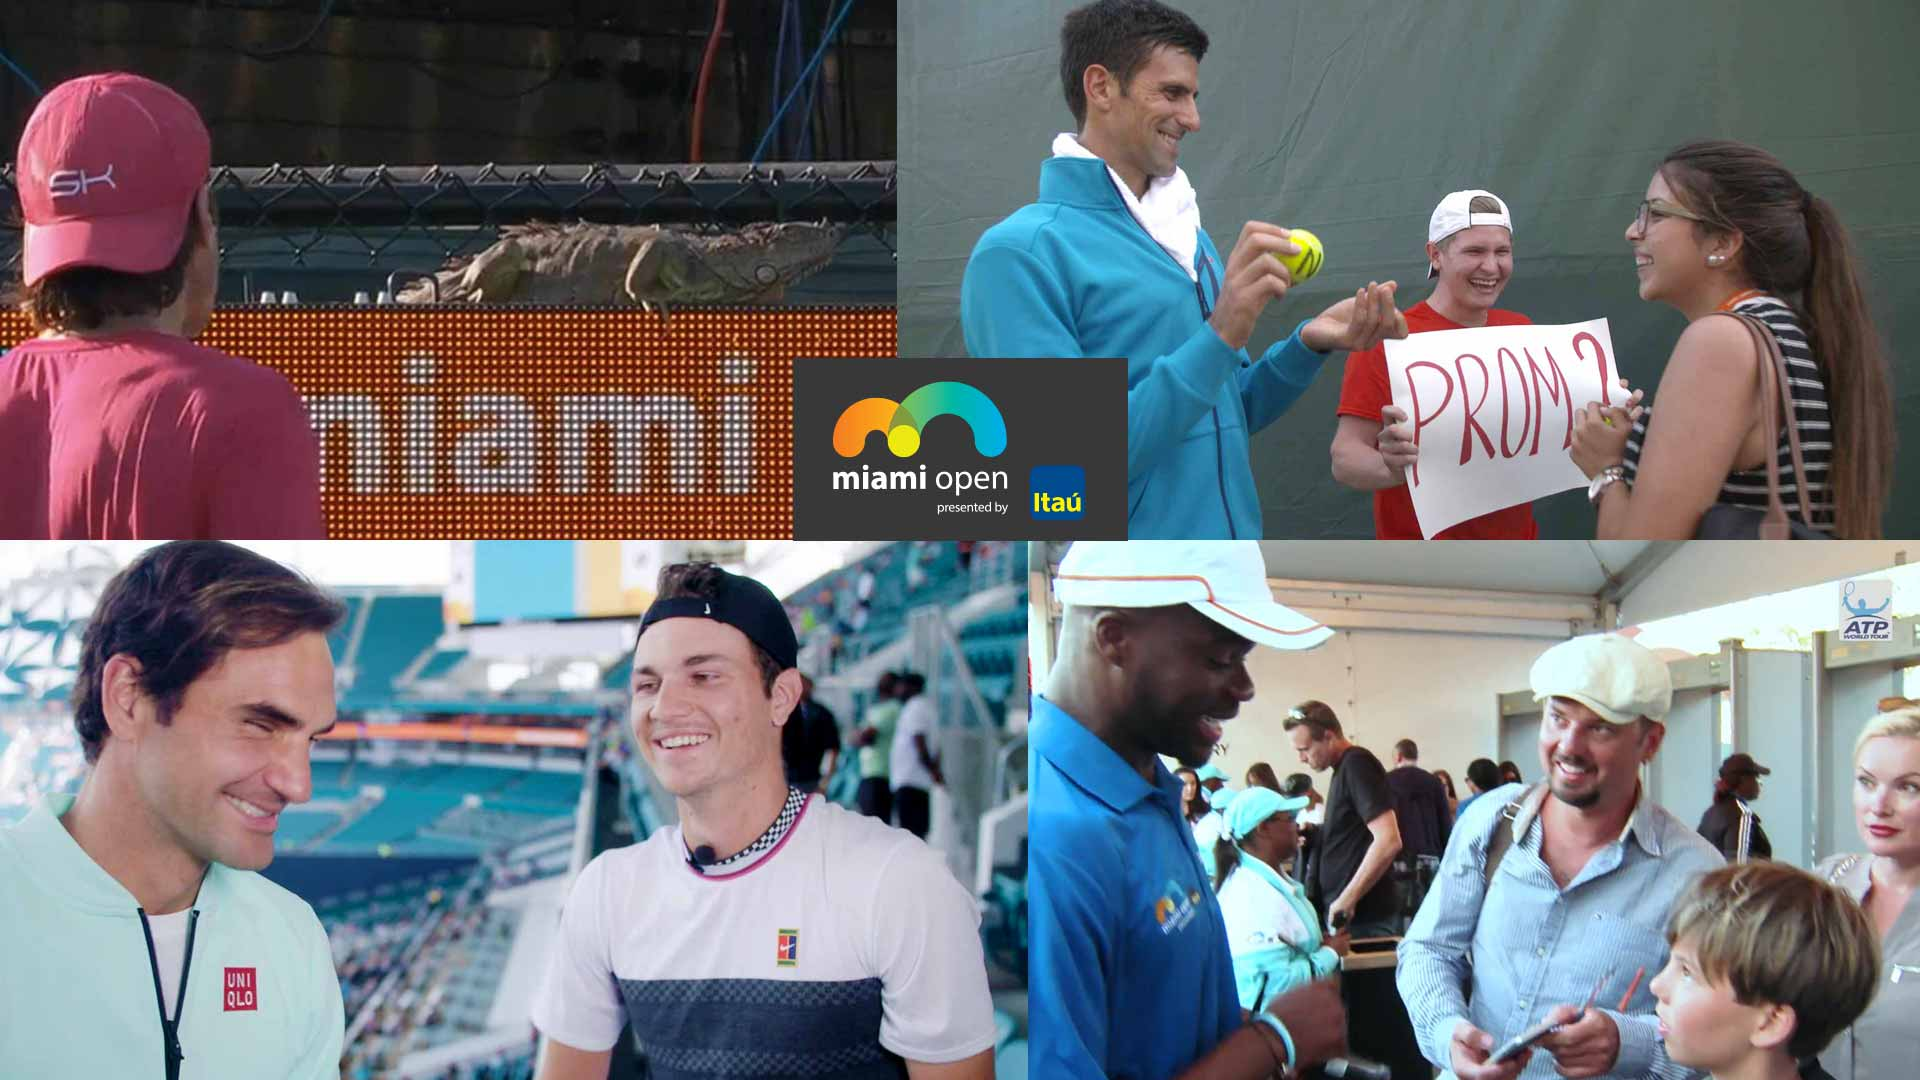 Roger Federer, Novak Djokovic feature in four memorable off-court moments at the Miami Open presented by Itau.